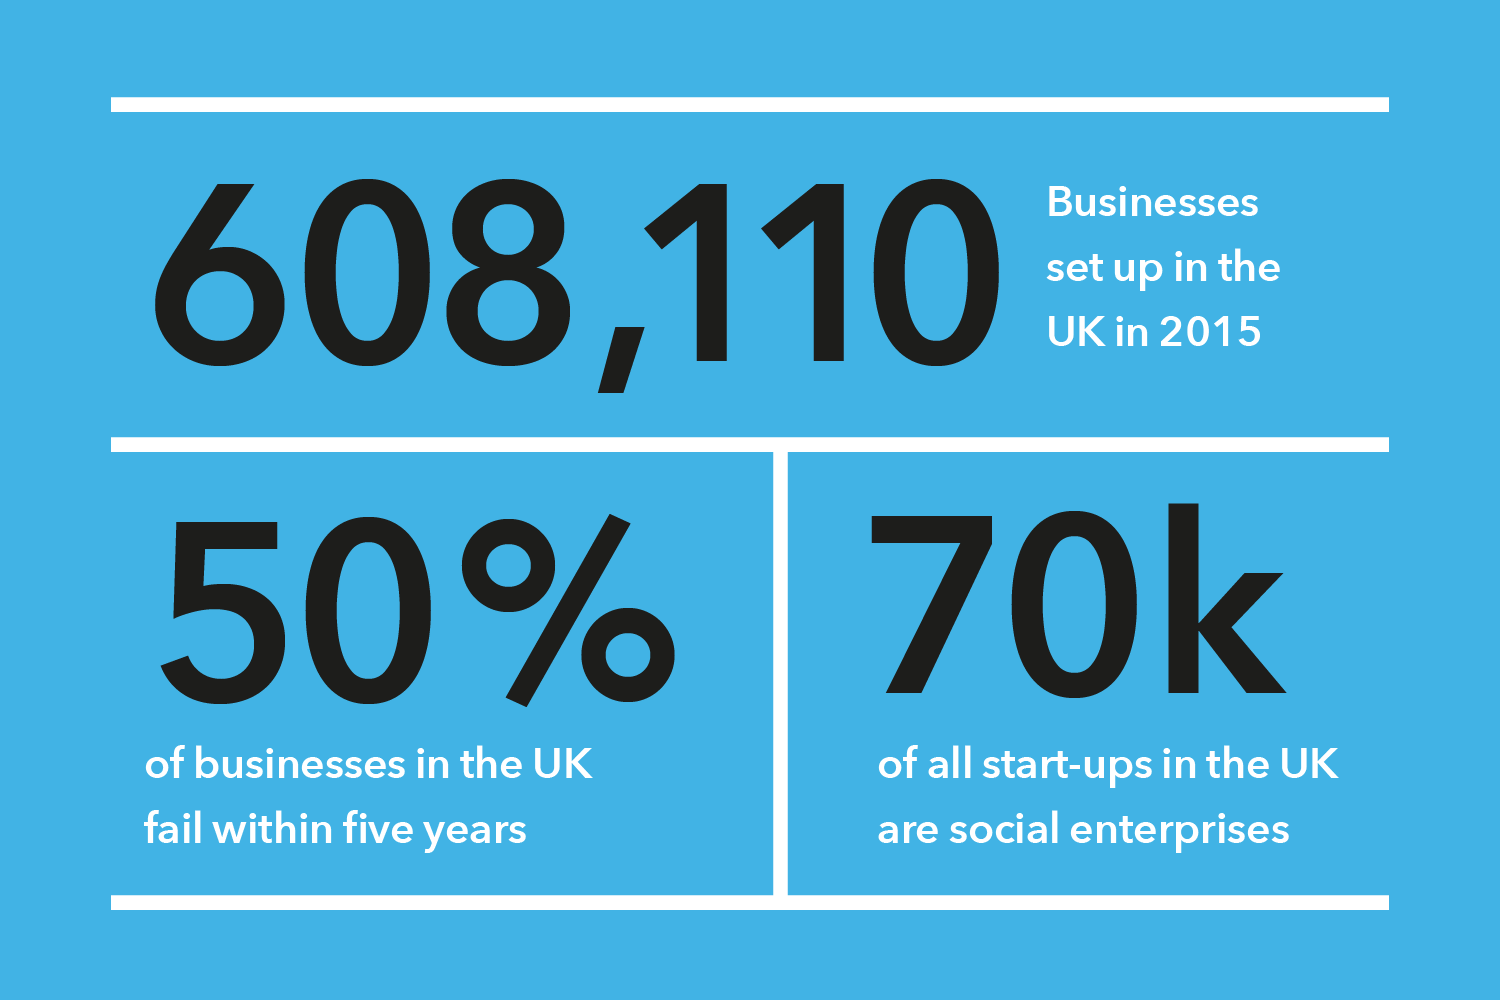 Small business facts in the UK